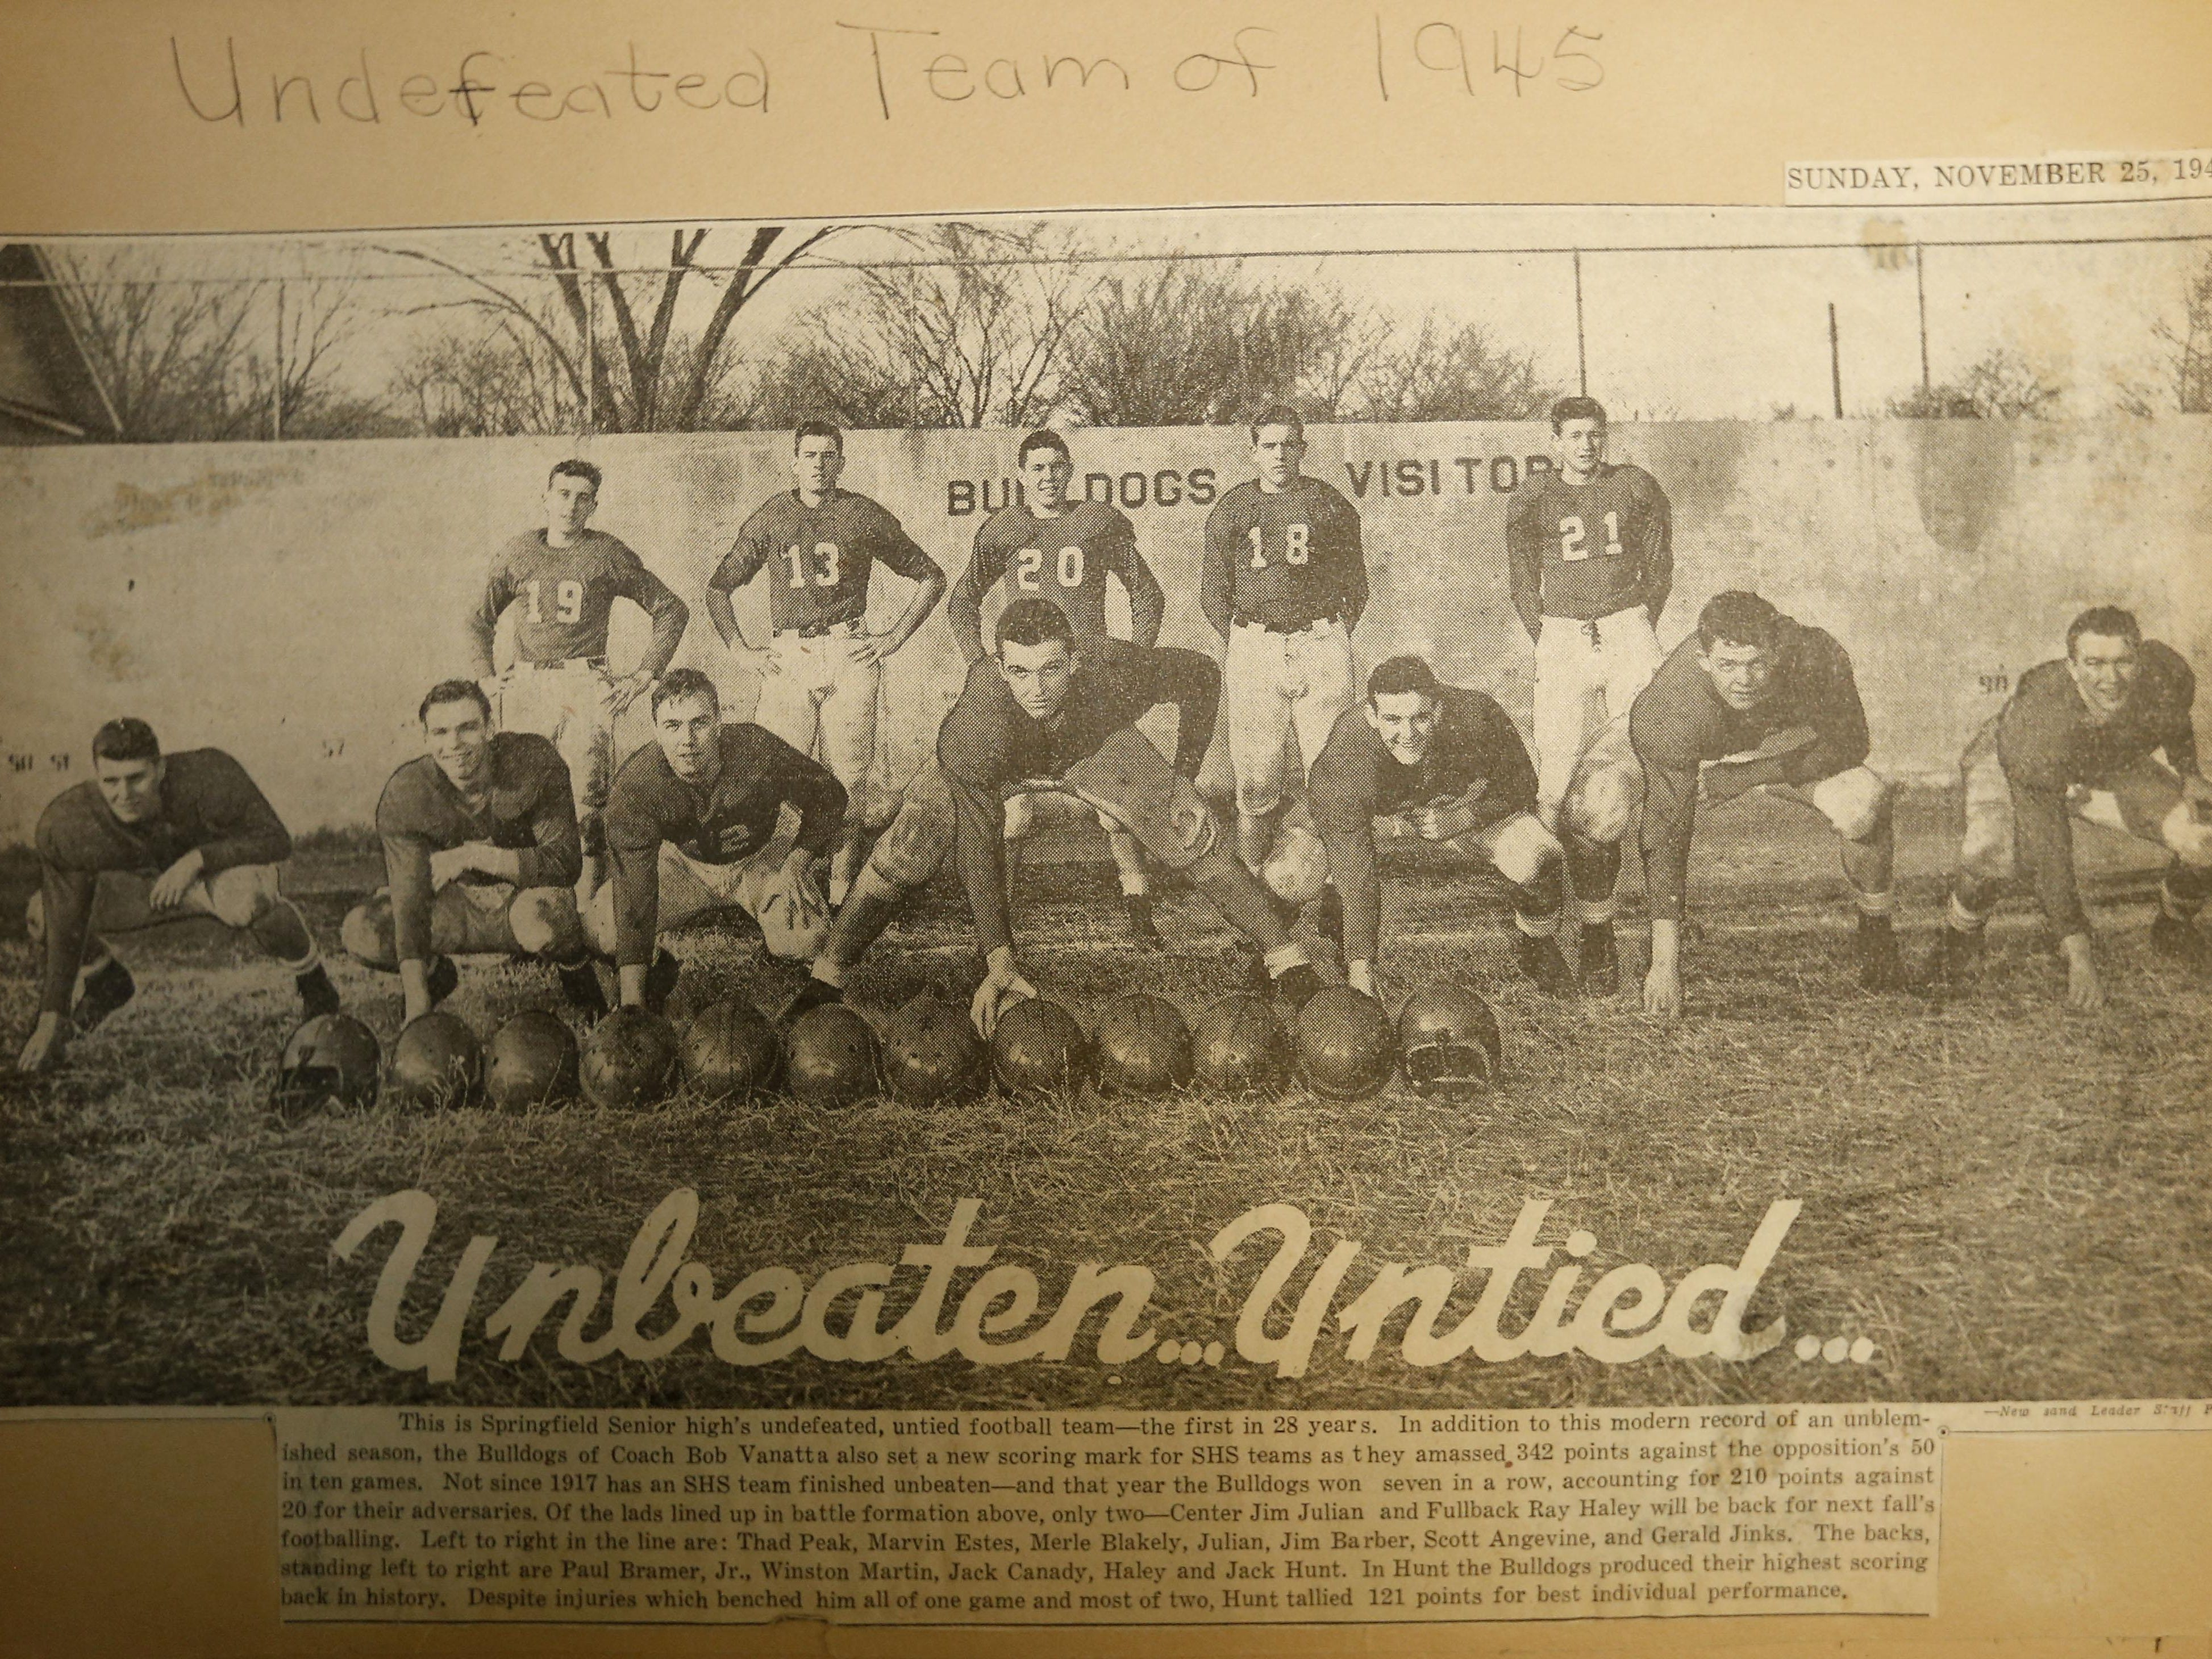 A newspaper clipping from the News and Leader in 1945 of the undefeated Springfield Senior High (now Central) football team.